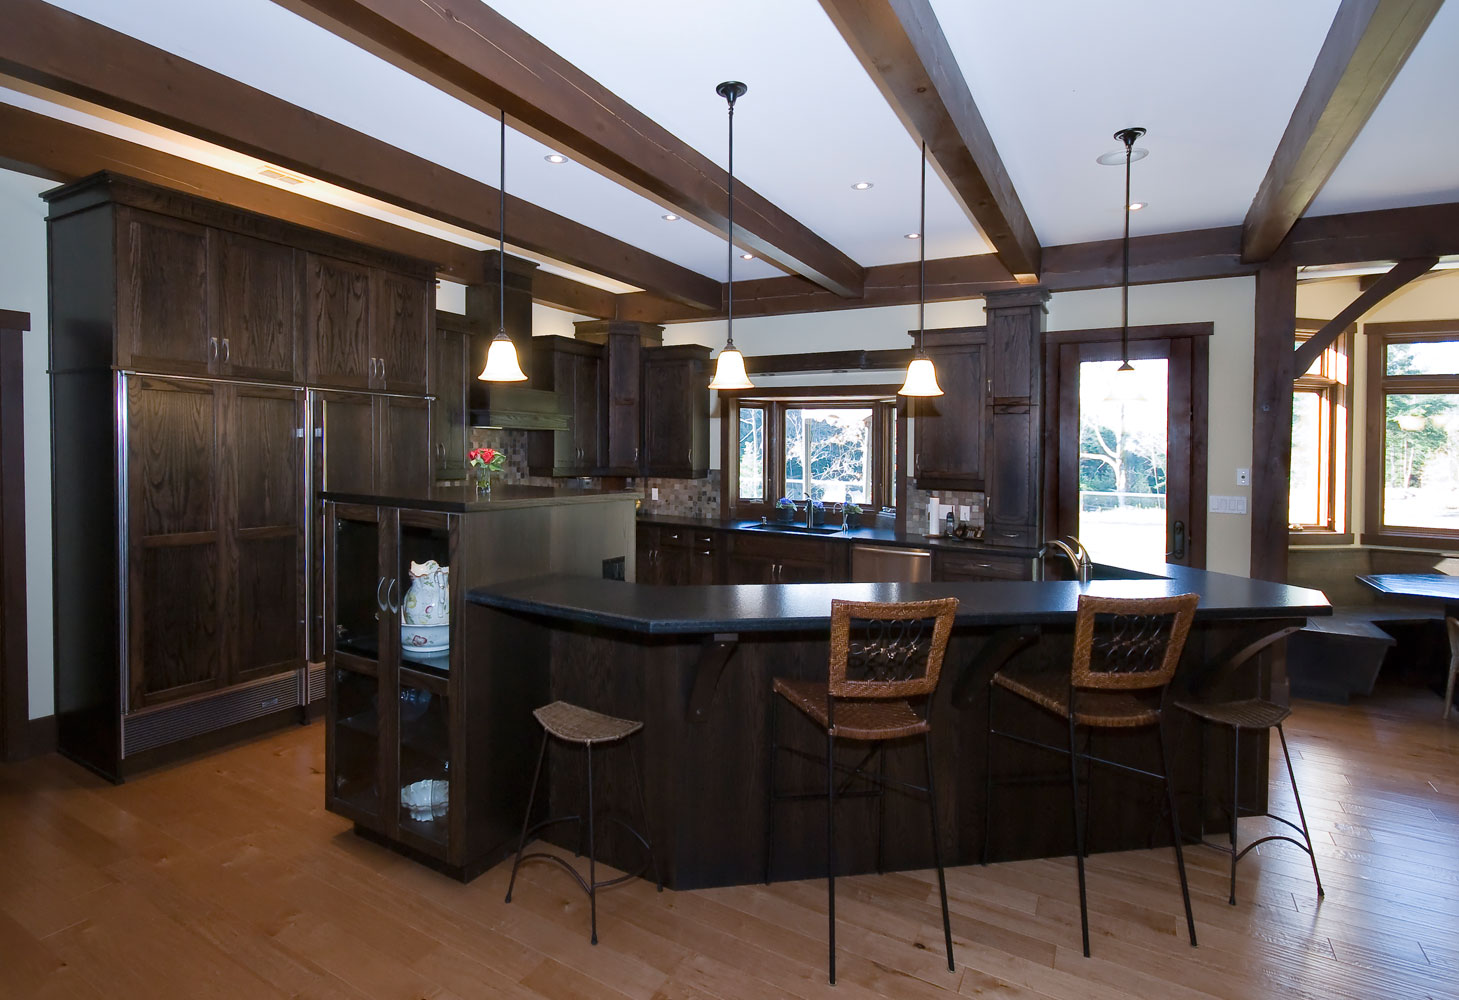 large kitchen design with dark wood cabinets, hardwood floors, stainless steel appliances, and wood ceiling beams - Total Living Concepts barrie ontario